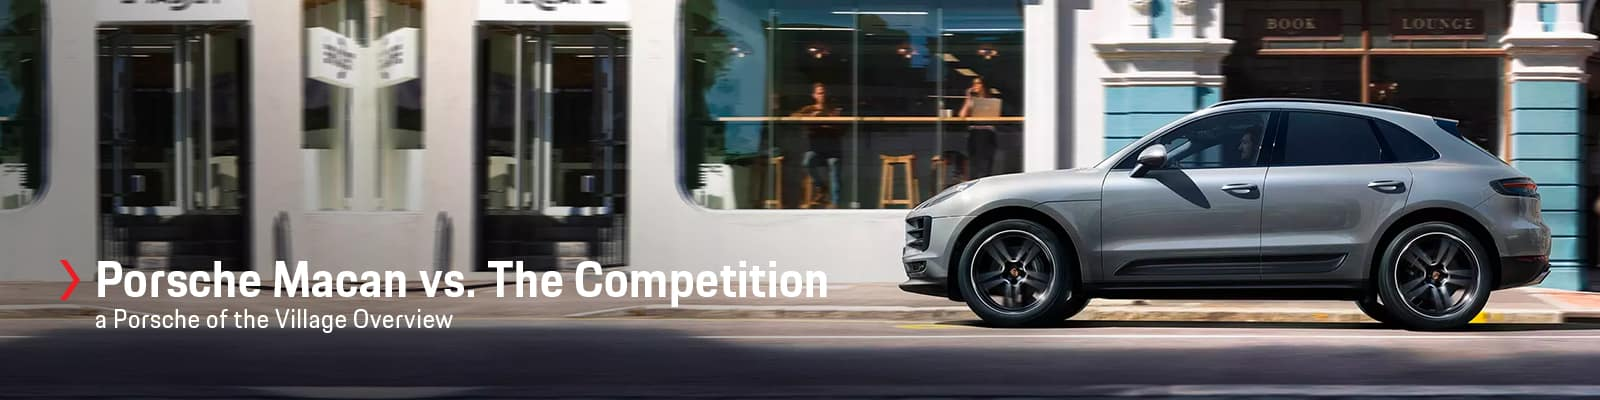 Porsche Macan vs BMW X3 vs Mercedes-Benz GLC at Porsche of the Village